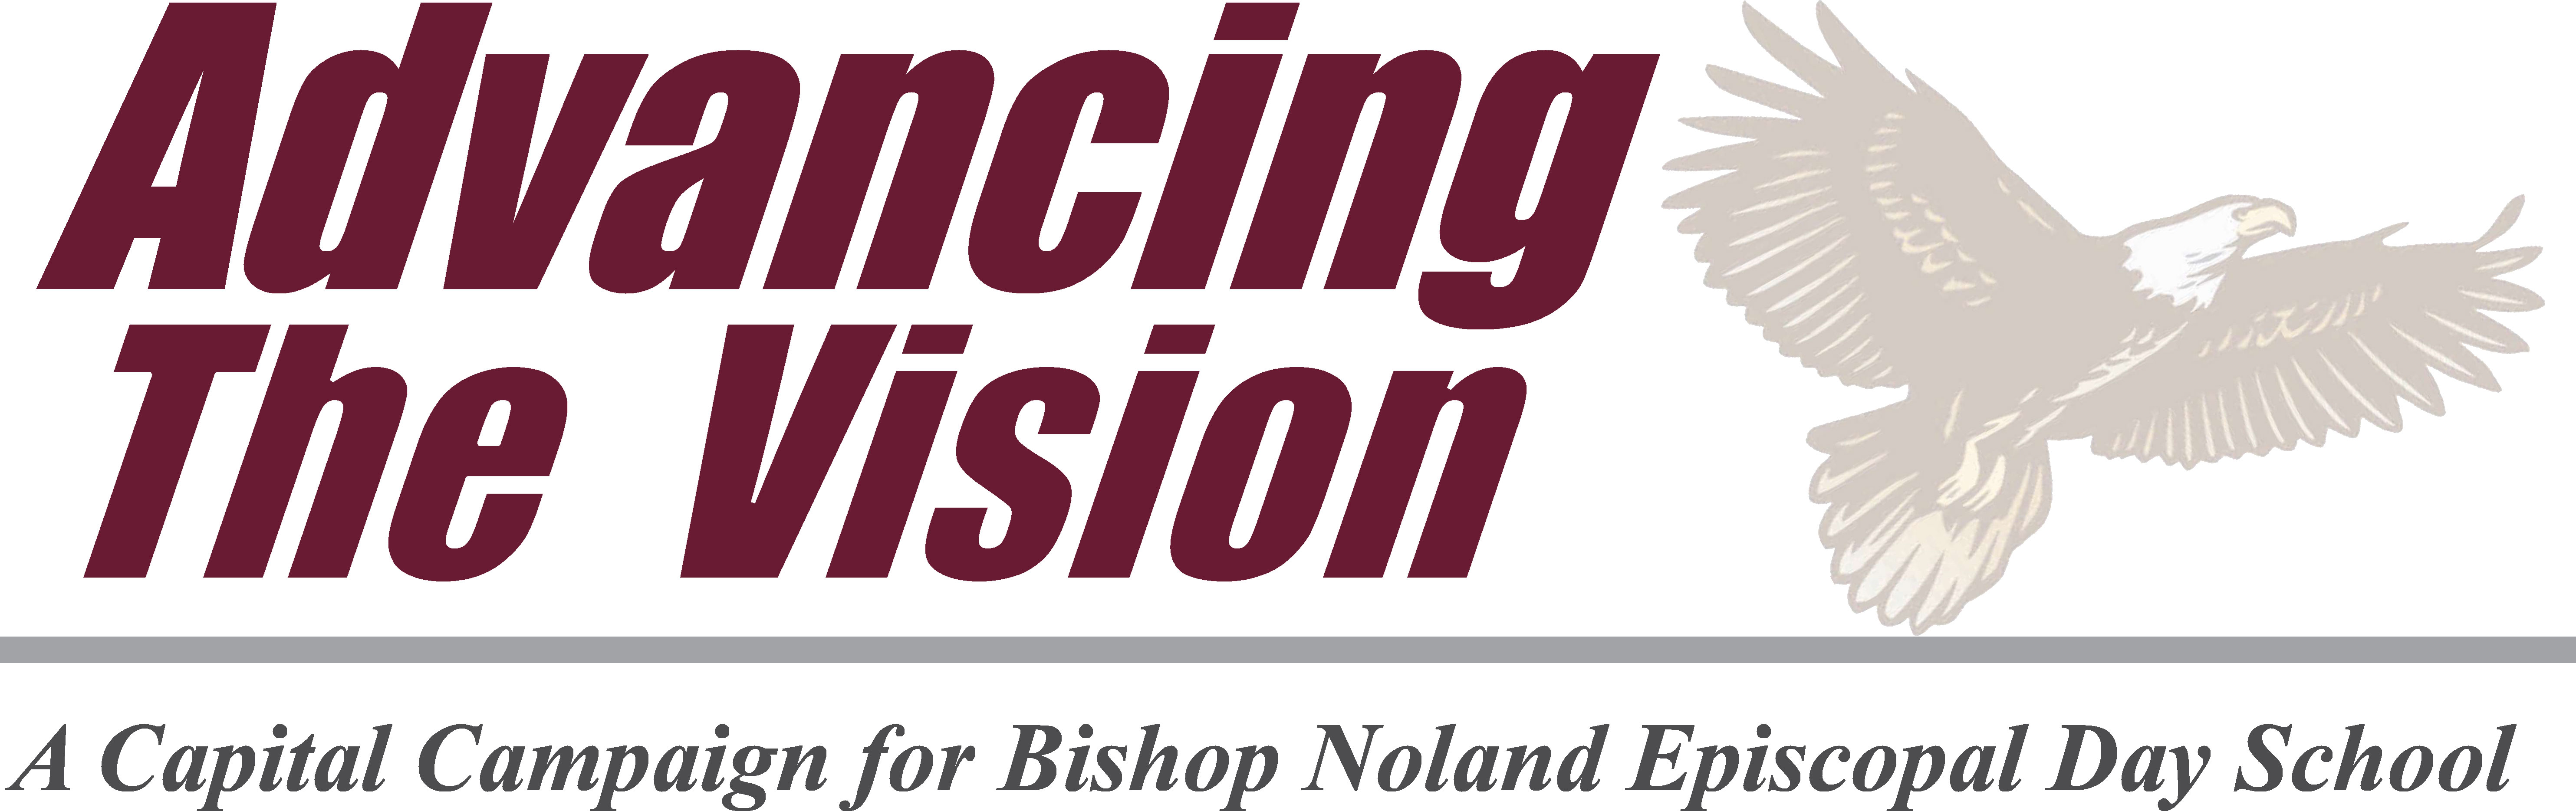 Advancing The Vision Logo - A Capital Campaign for Bishop Noland Episcopal Day School